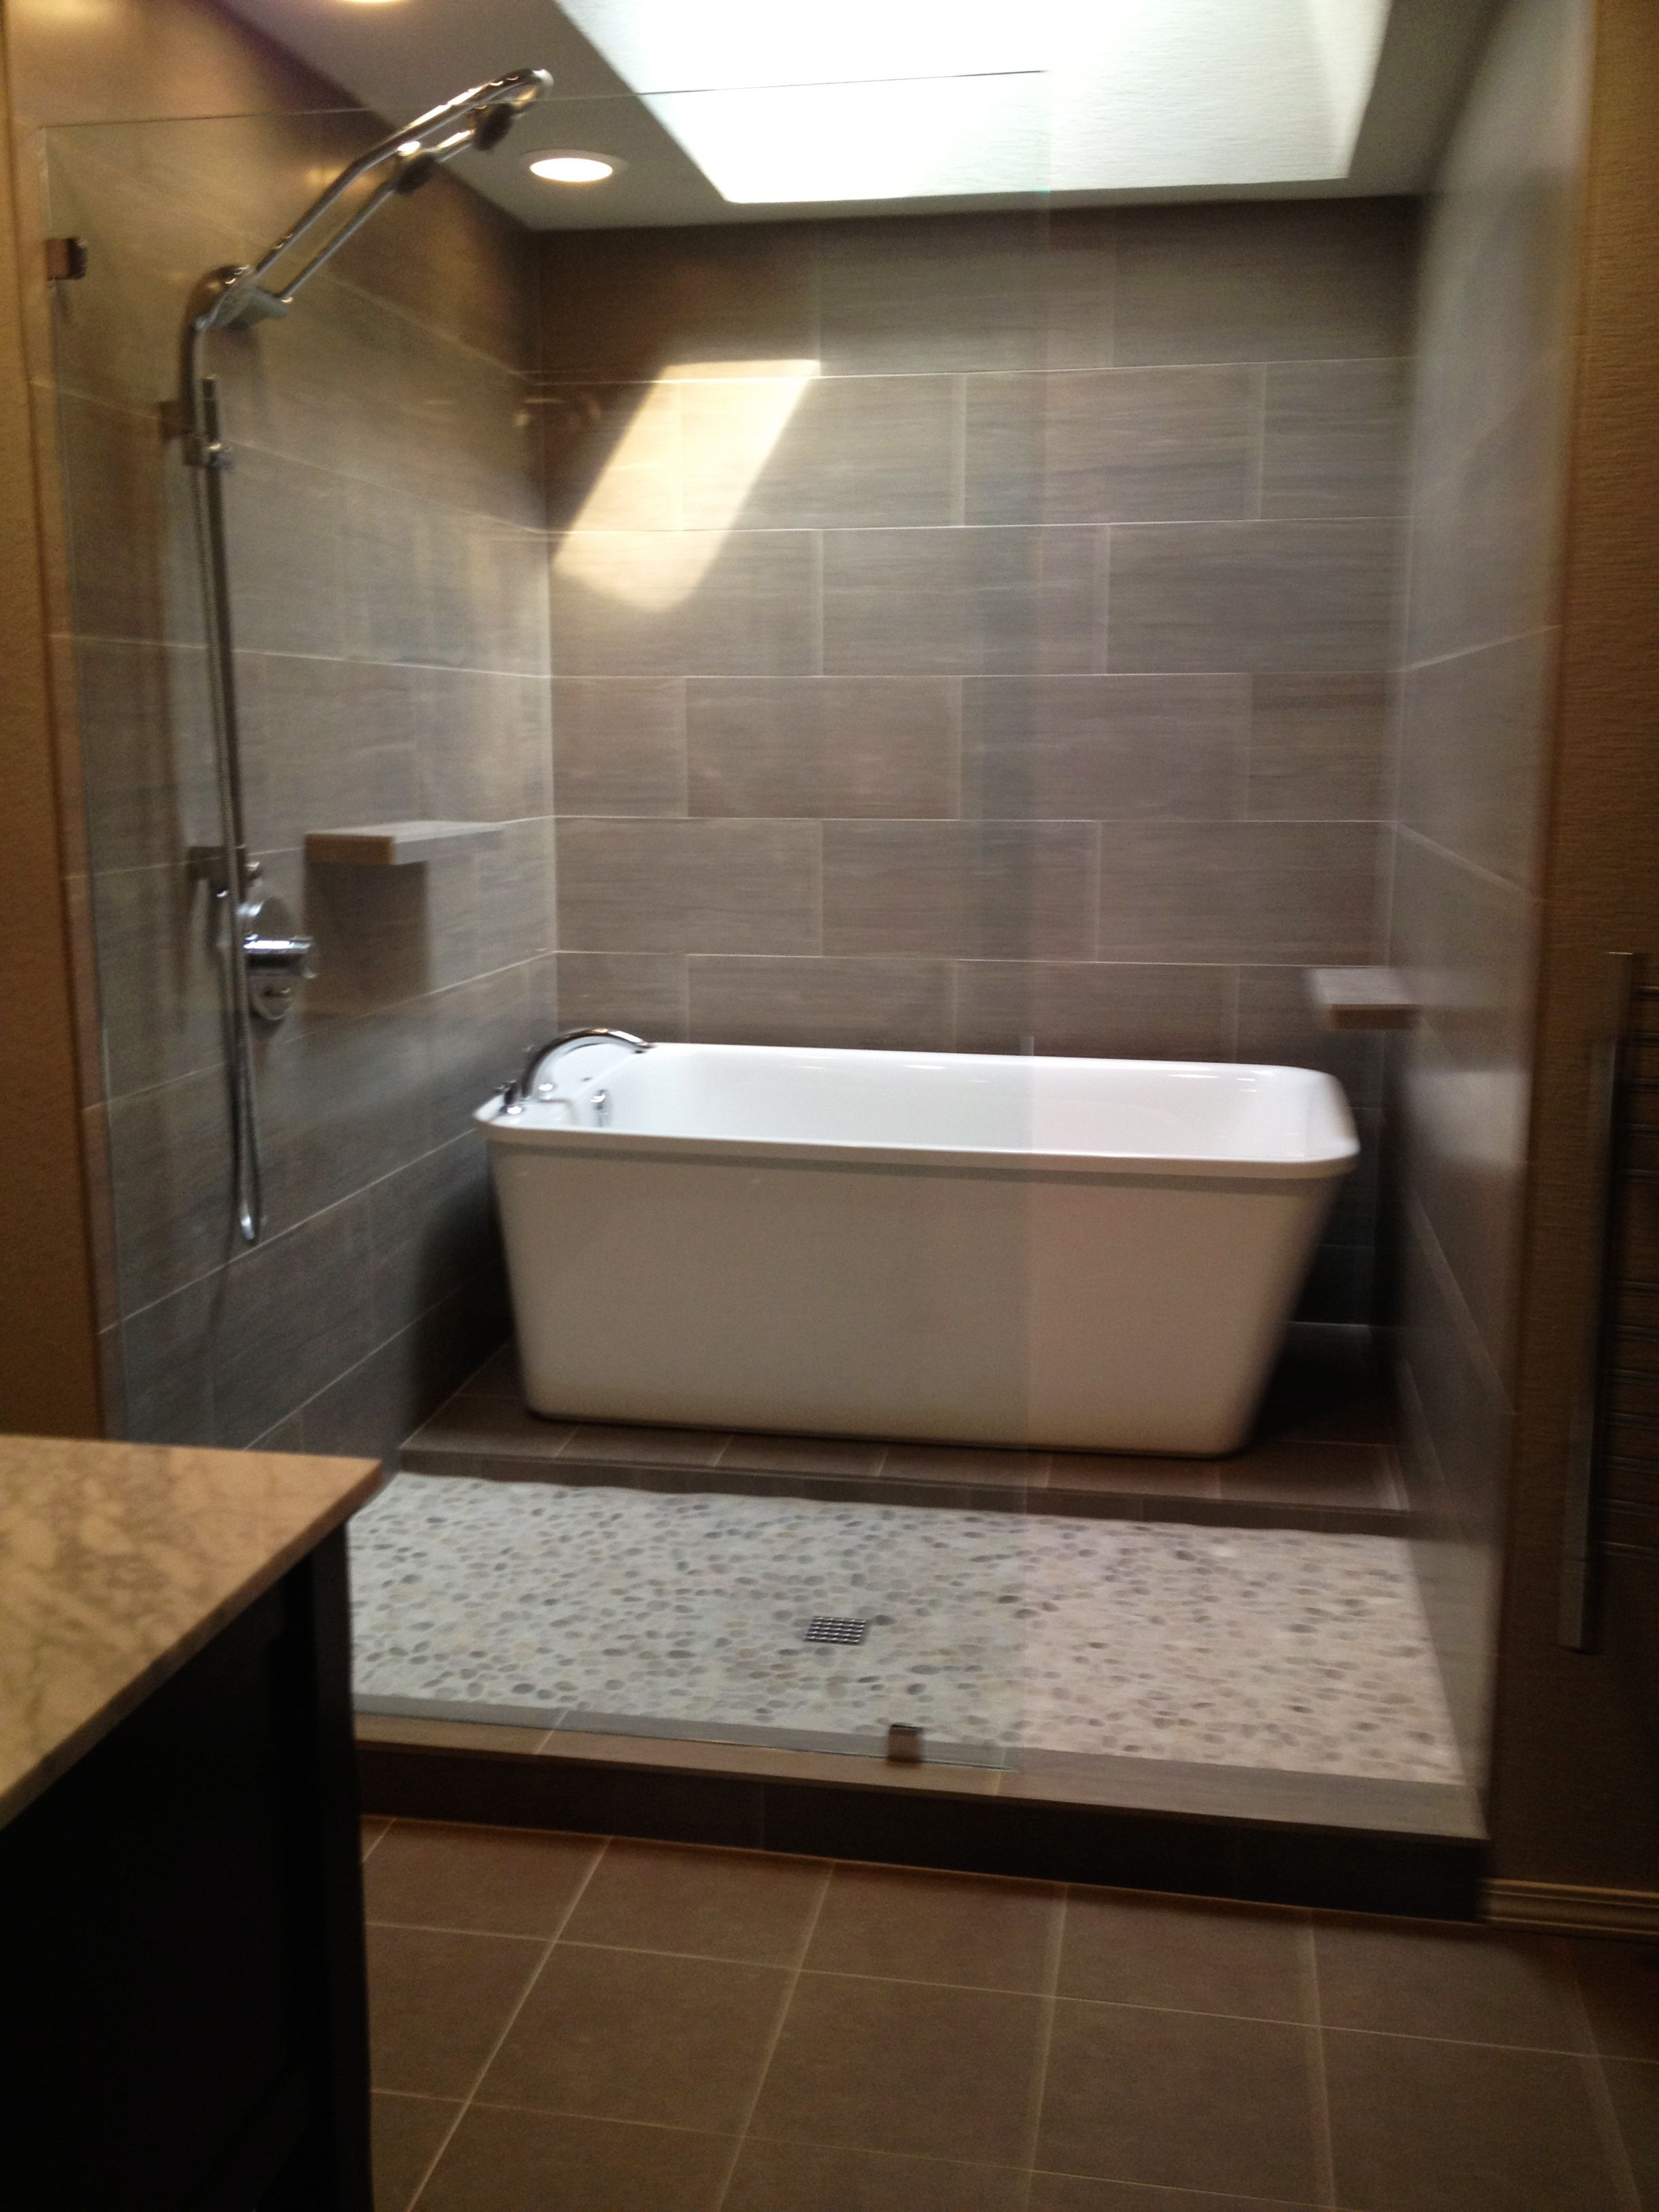 artec group inc interior design and remodeling bathroom remodel fort worth tx - Bathroom Remodel Fort Worth